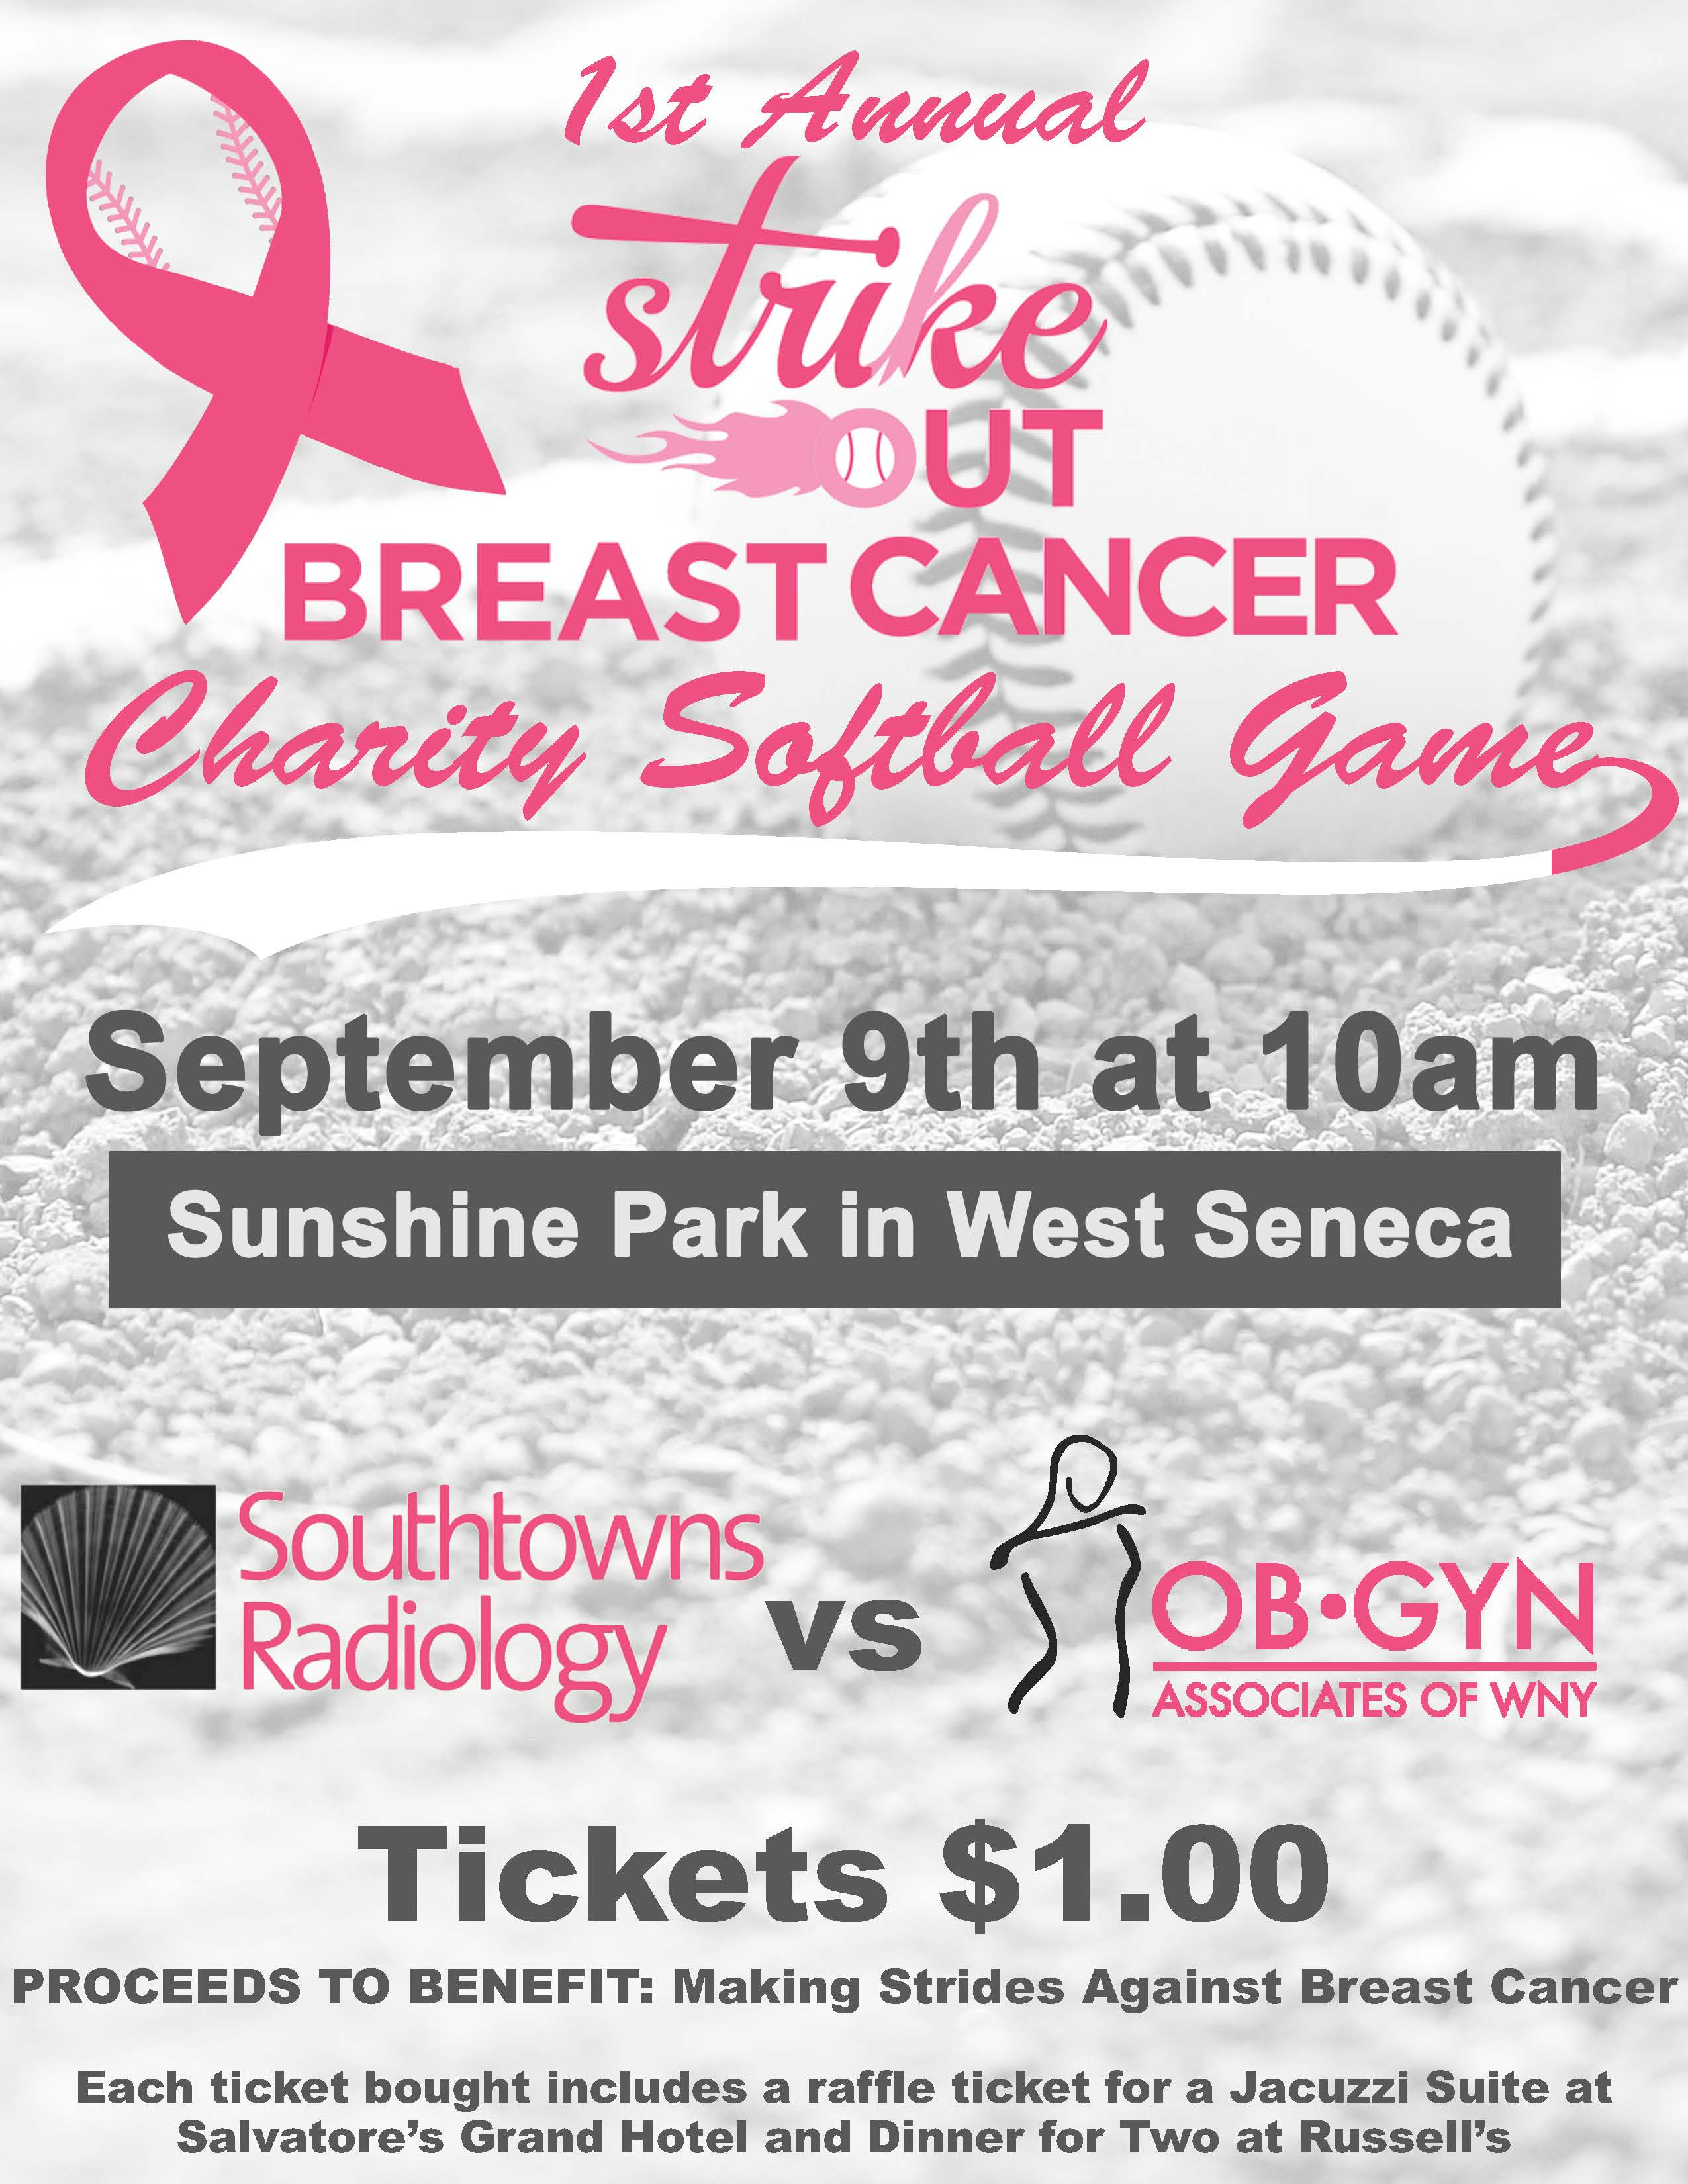 A flyer for our Charity Softball Game taking place on September 0th at 10am in Sunshine Park in West Seneca.